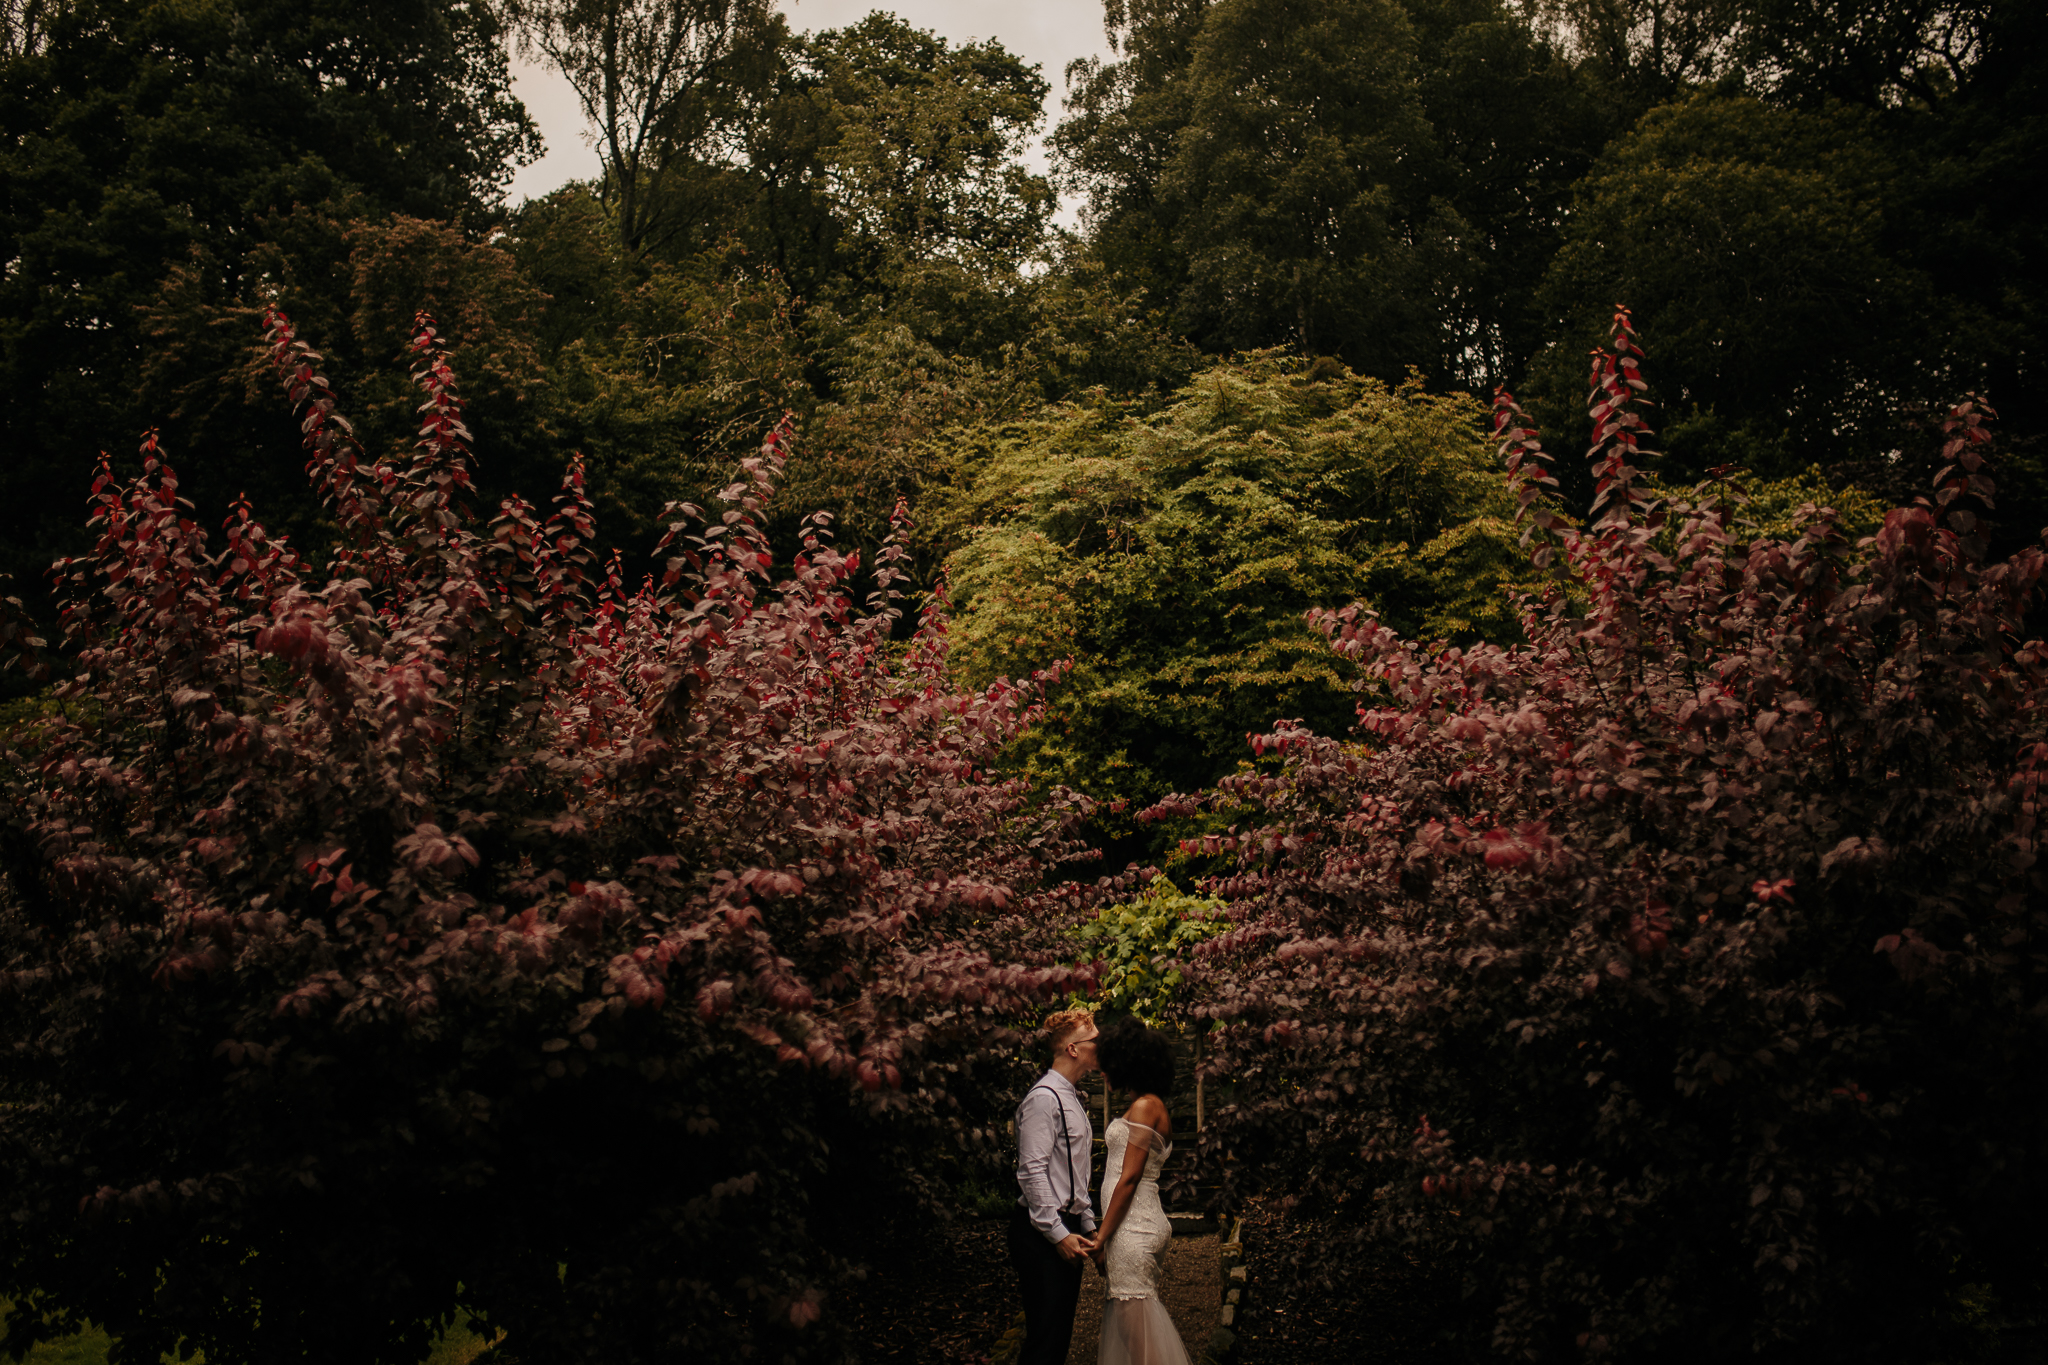 Internation Wedding Photographer - Victoria & Jamie - WeddingsbyQay - Scotland Wedding Photographer (155 of 209).jpg